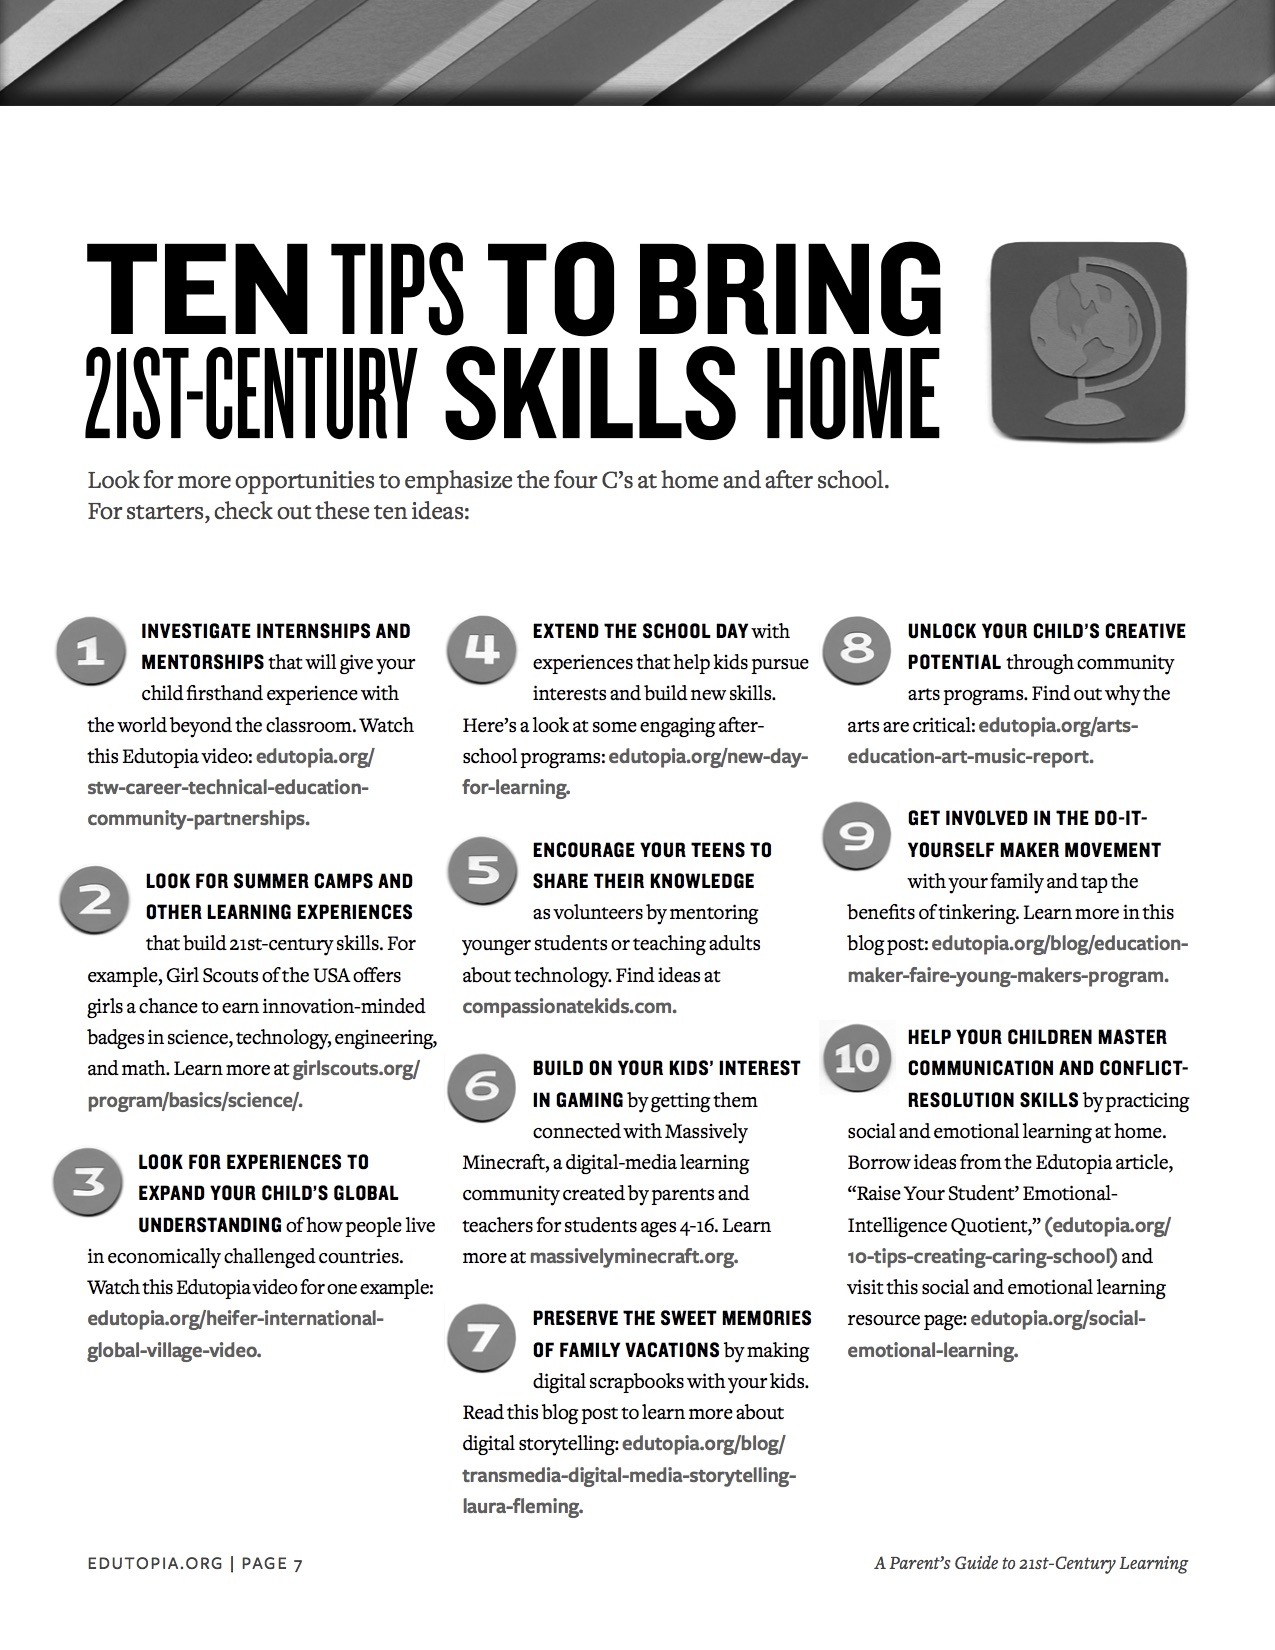 8_edutopia-parents-guide-21st-century-learning-print